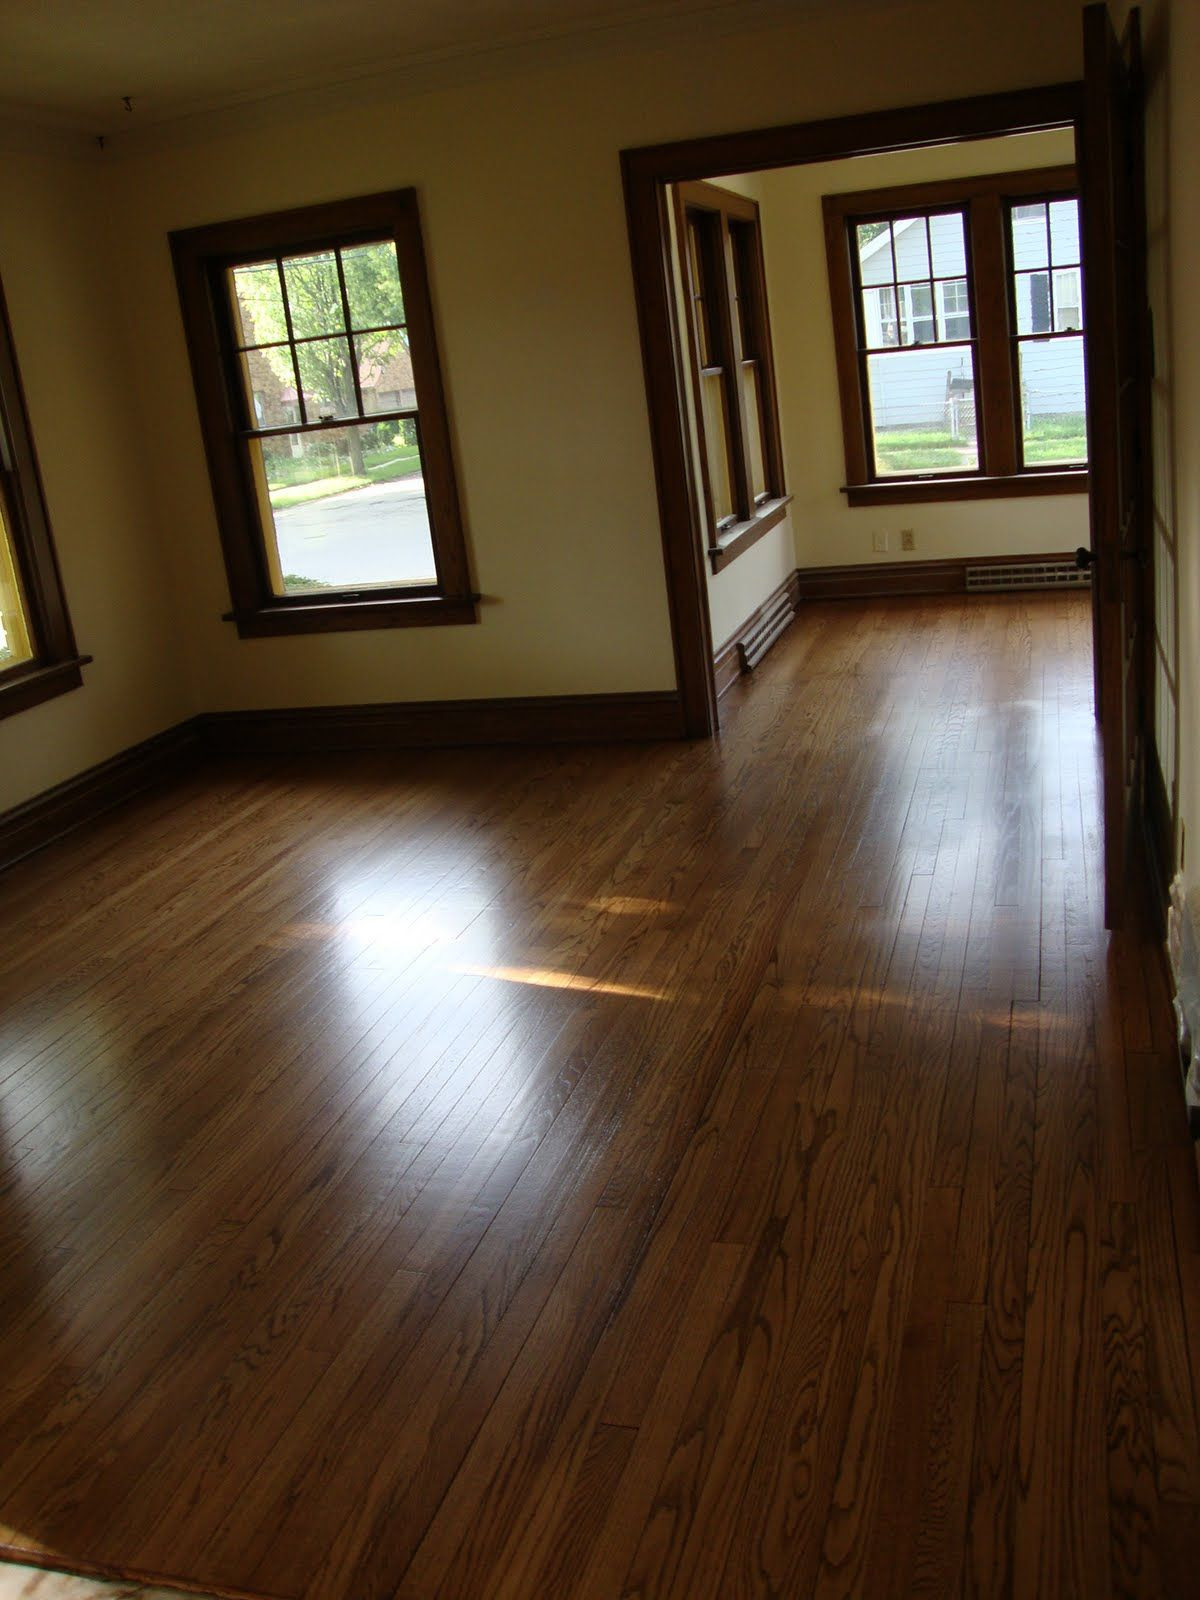 hardwood floor refinishing prices per square foot of cost per square foot to refinish hardwood floors it s ly a paper with floor refinishing staining hardwood cost per square foot to refinish hardwood floors dark wood trim with hardwood floors and lighter